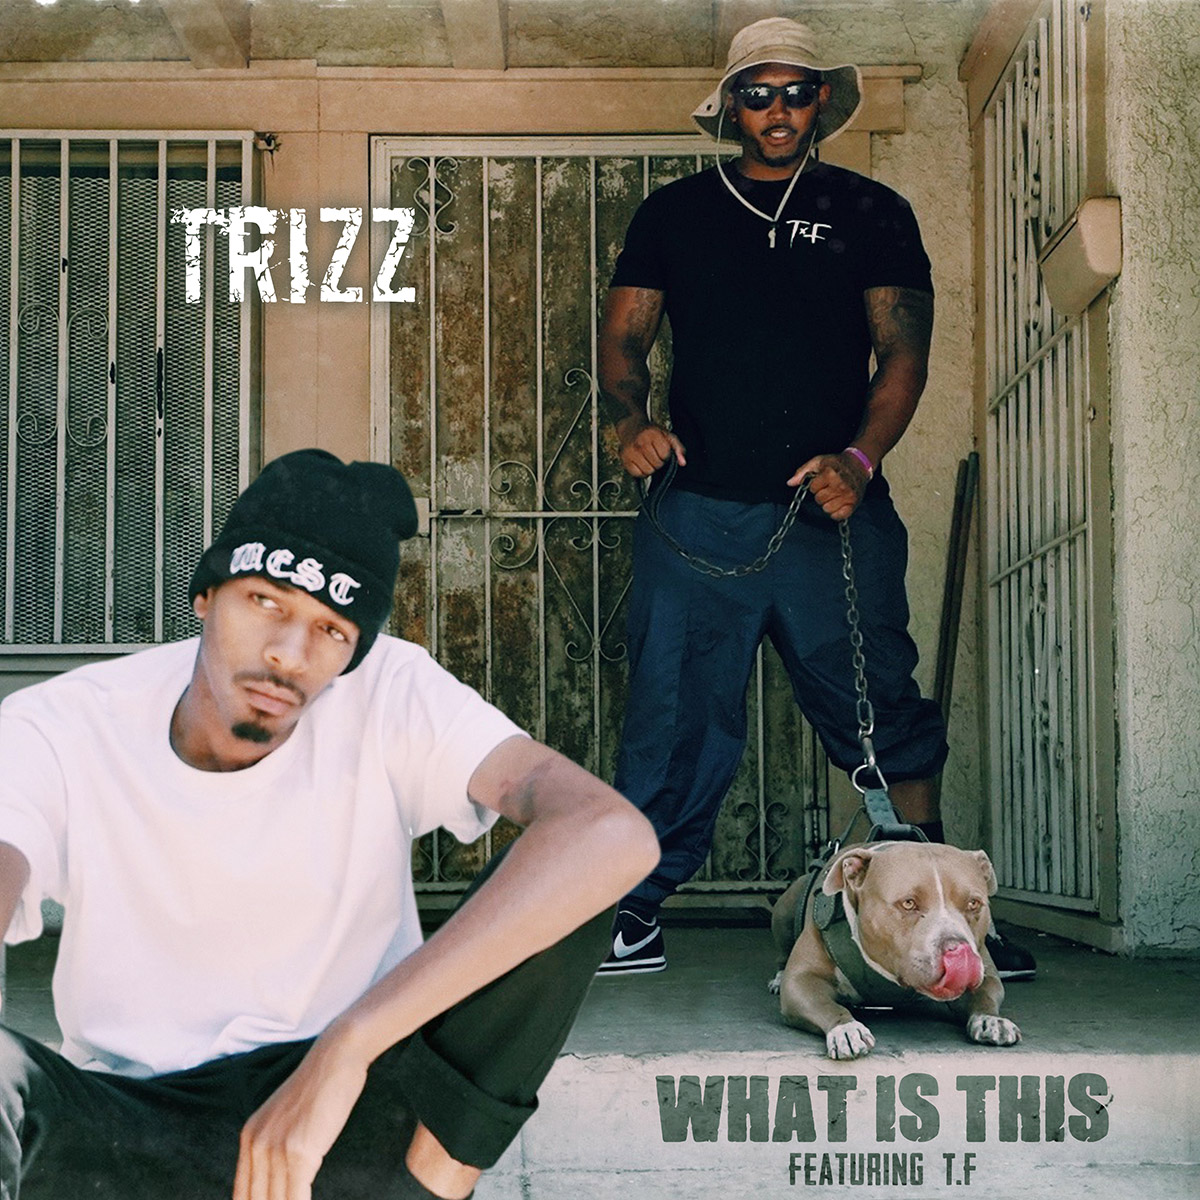 Trizz - What Is This